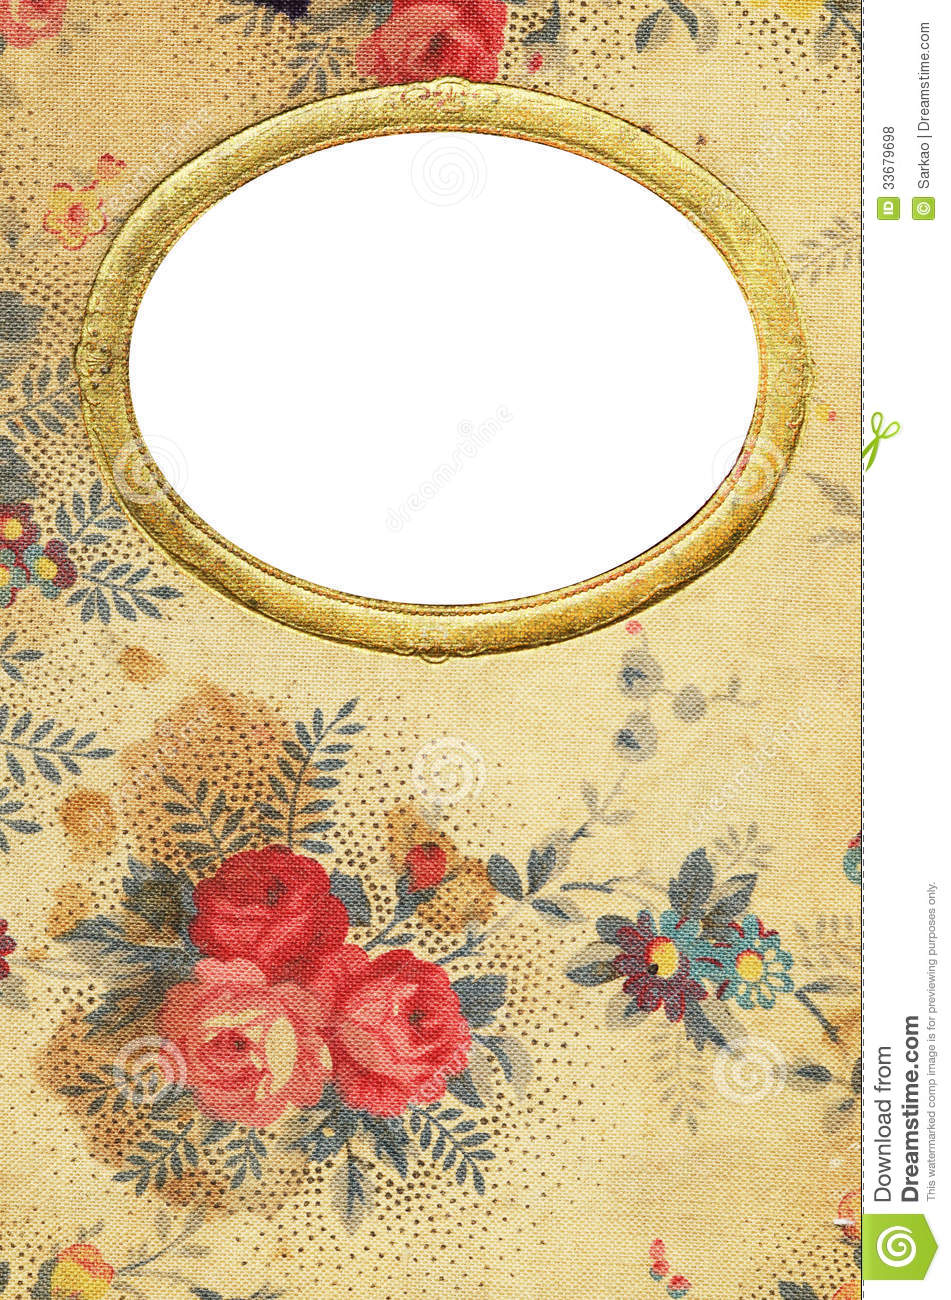 Antique Floral Diary Cover Royalty Free Stock Photos Image 33679698